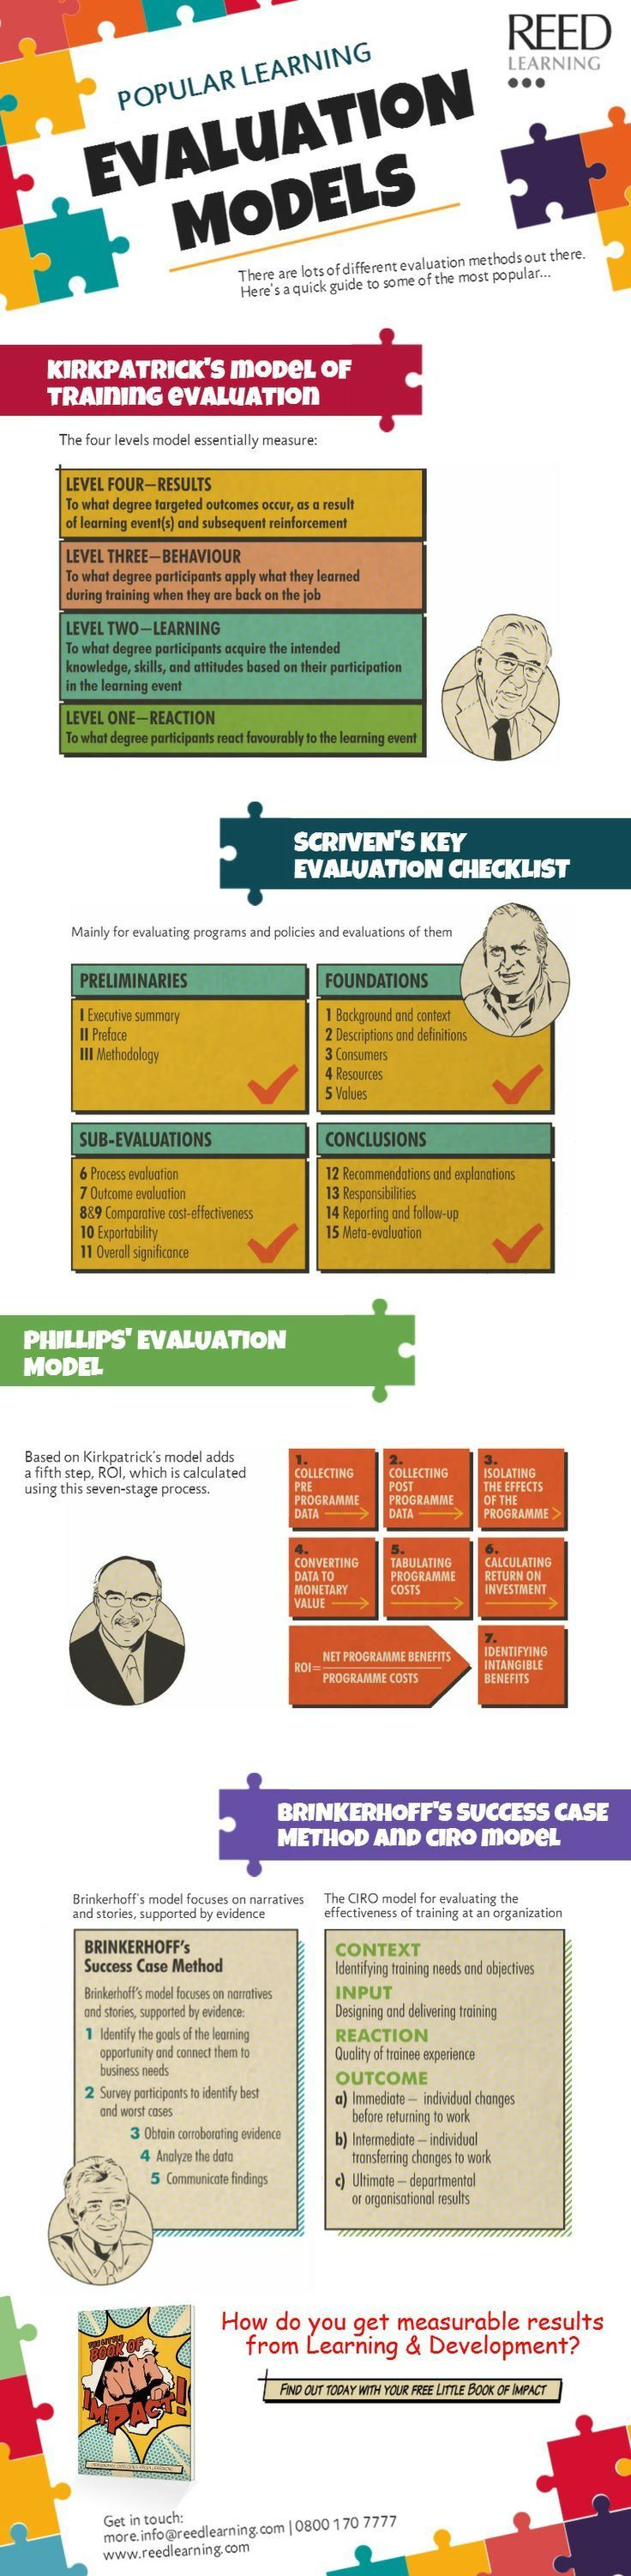 Popular Learning Evaluation Models Infographic